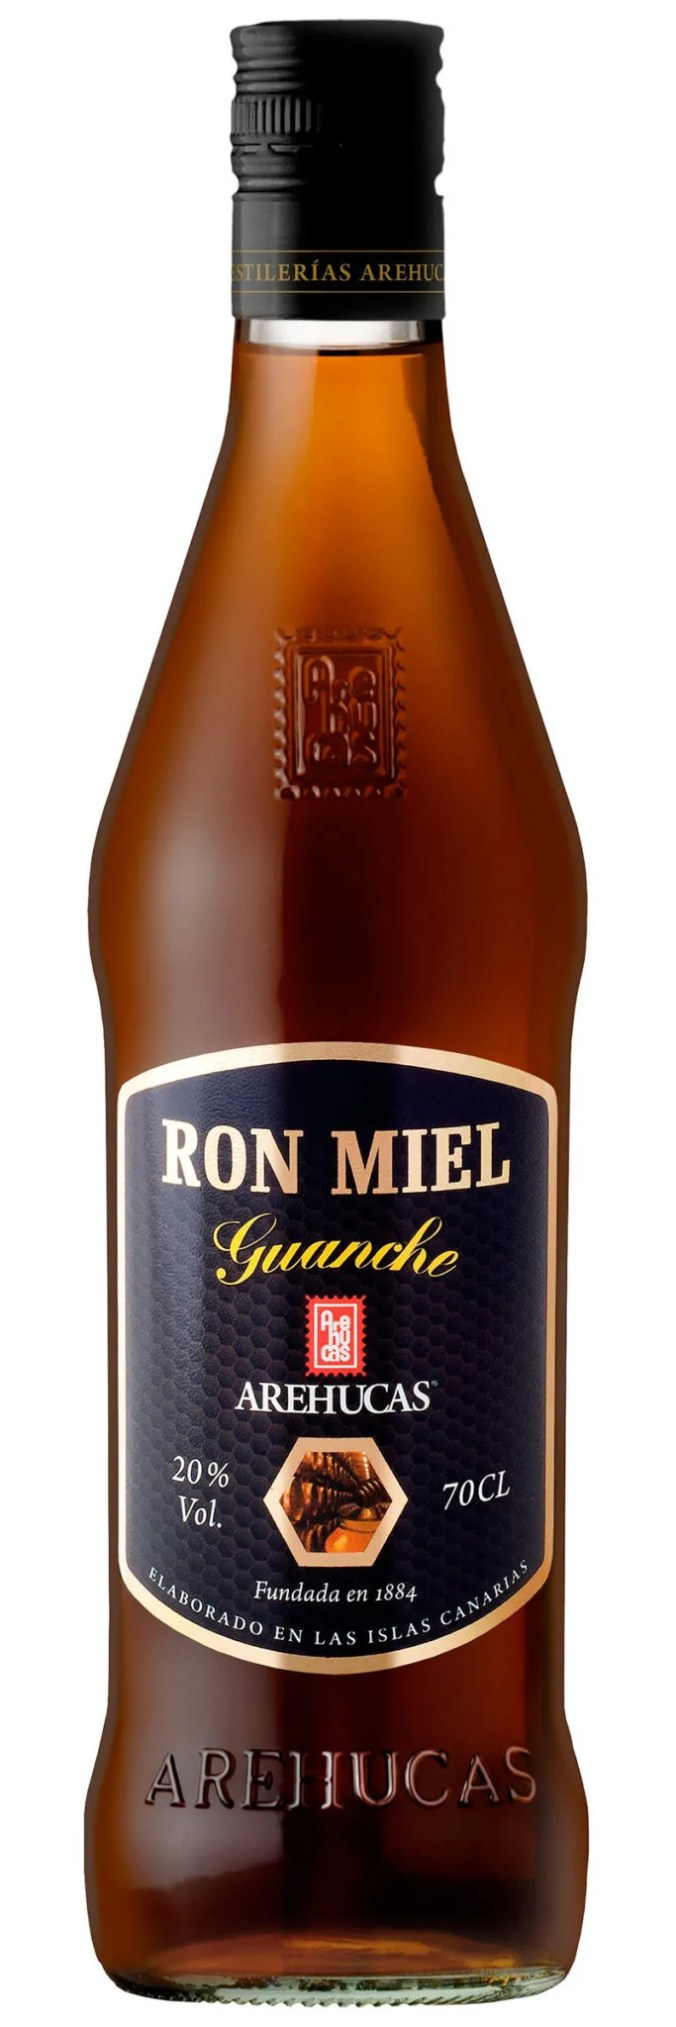 Ron Miel Guanche rum liqueur from Arehucas Distillery in the Canary Islands